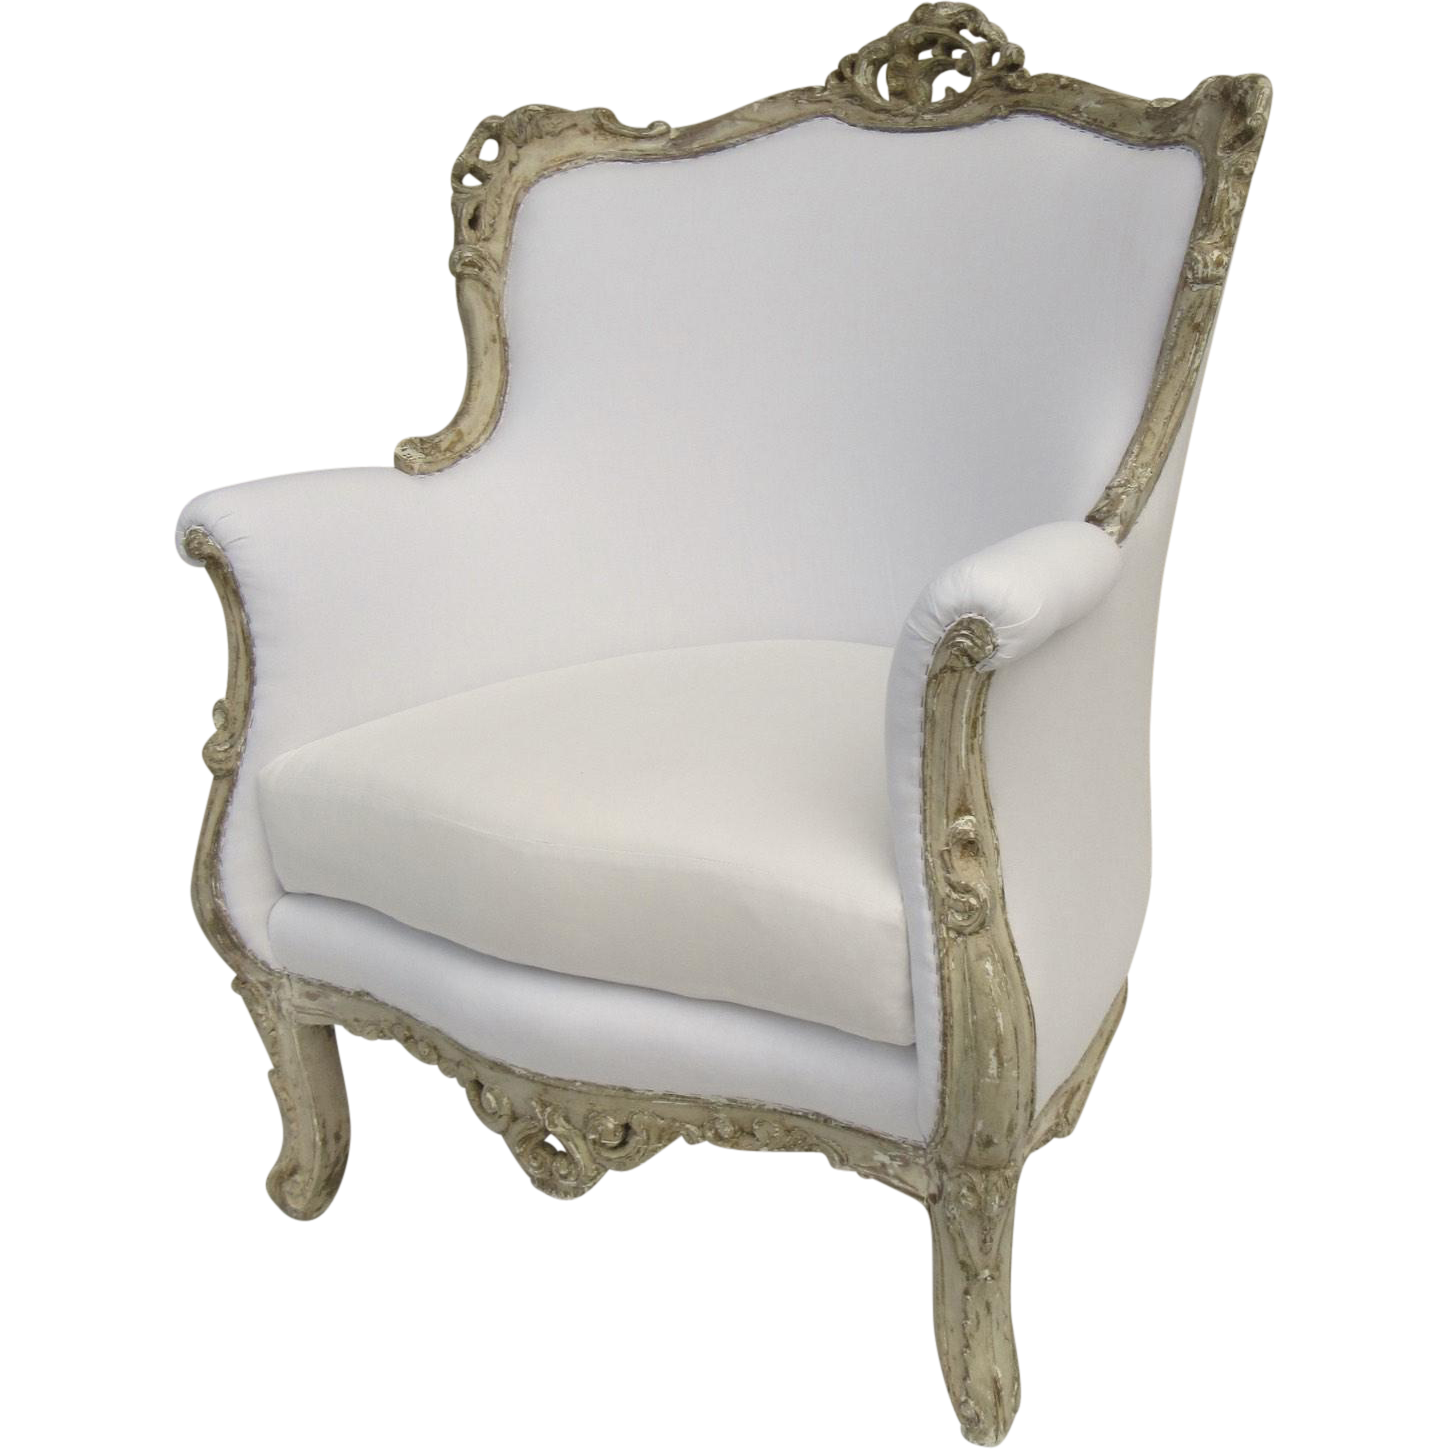 vintage arm chair video game chairs target rococo painted finish from